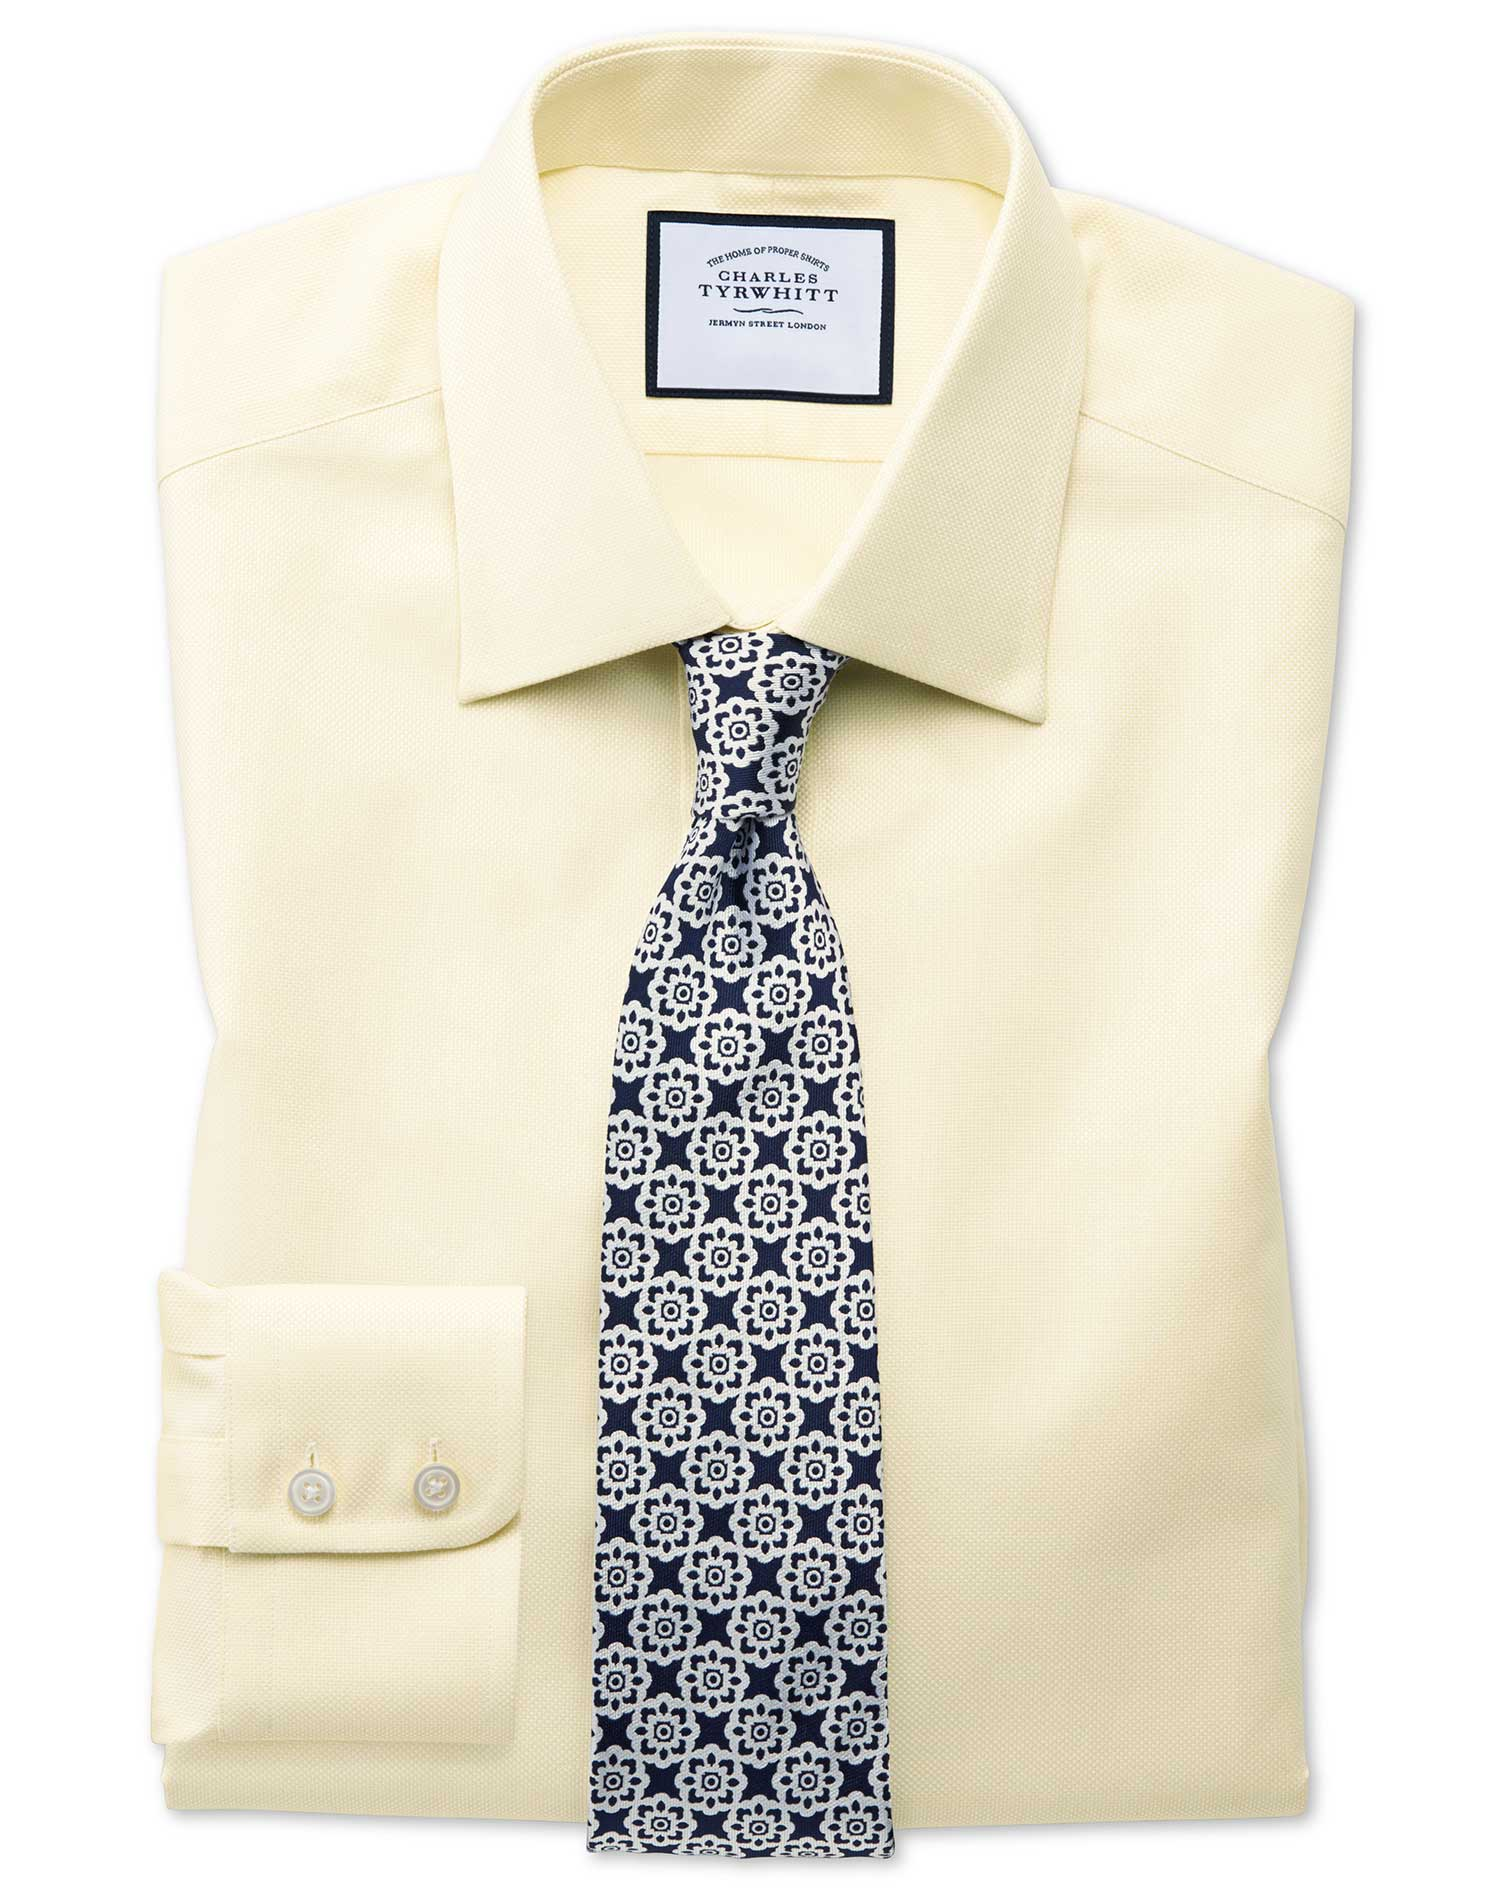 Classic Fit Egyptian Cotton Royal Oxford Yellow Formal Shirt Single Cuff Size 16.5/36 by Charles Tyr